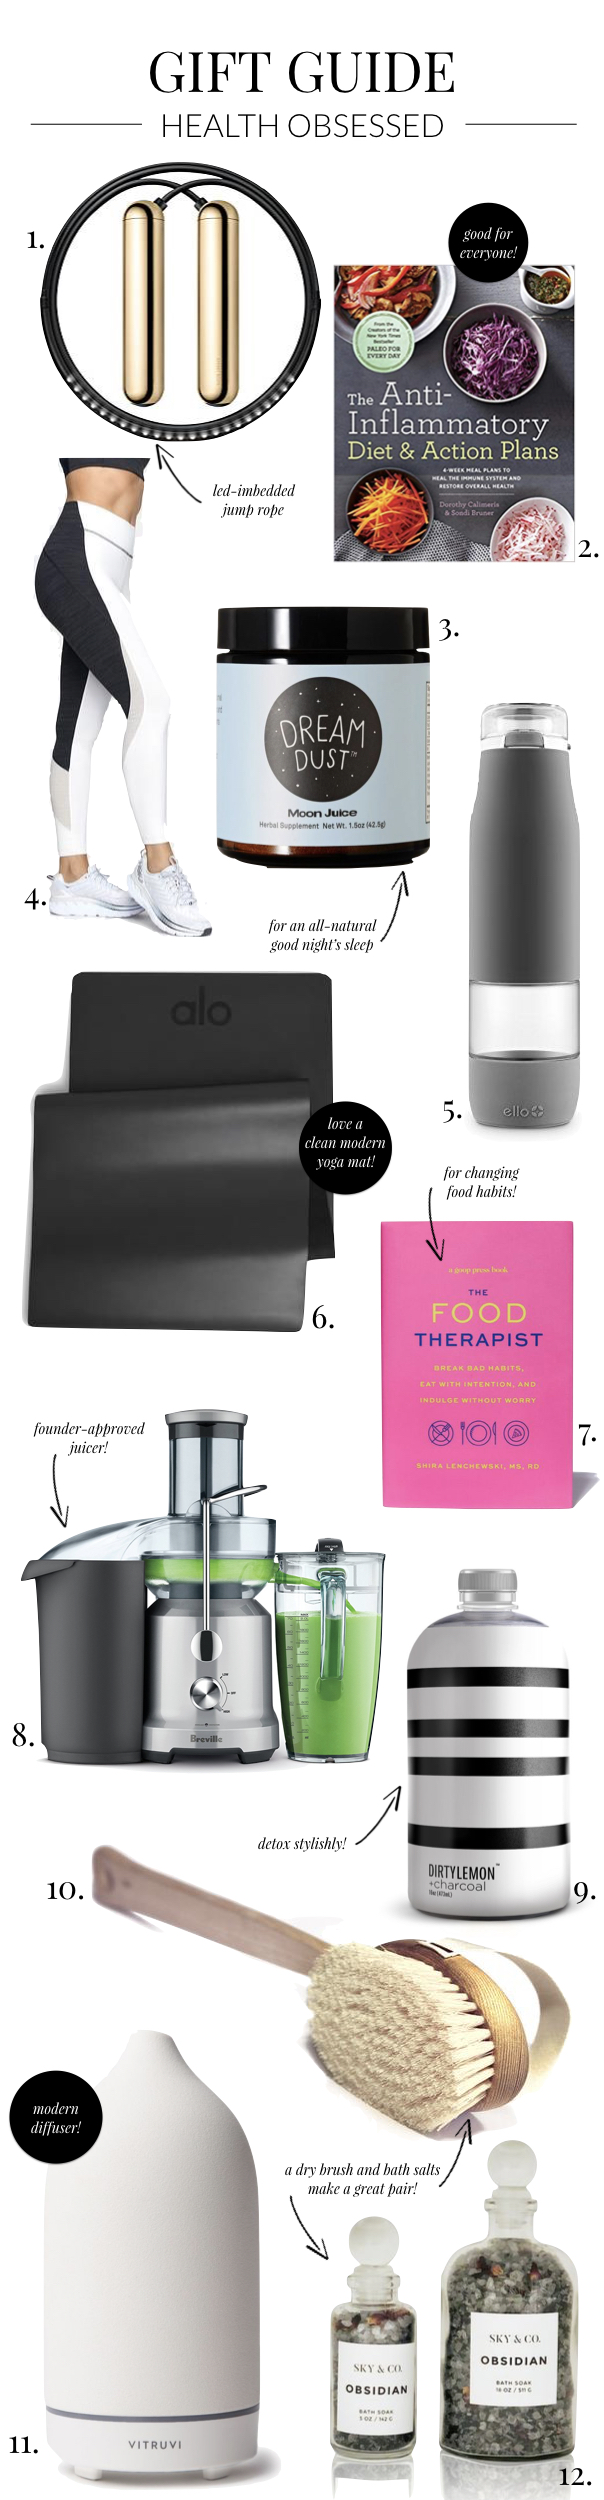 gift guide health obsessed 2018